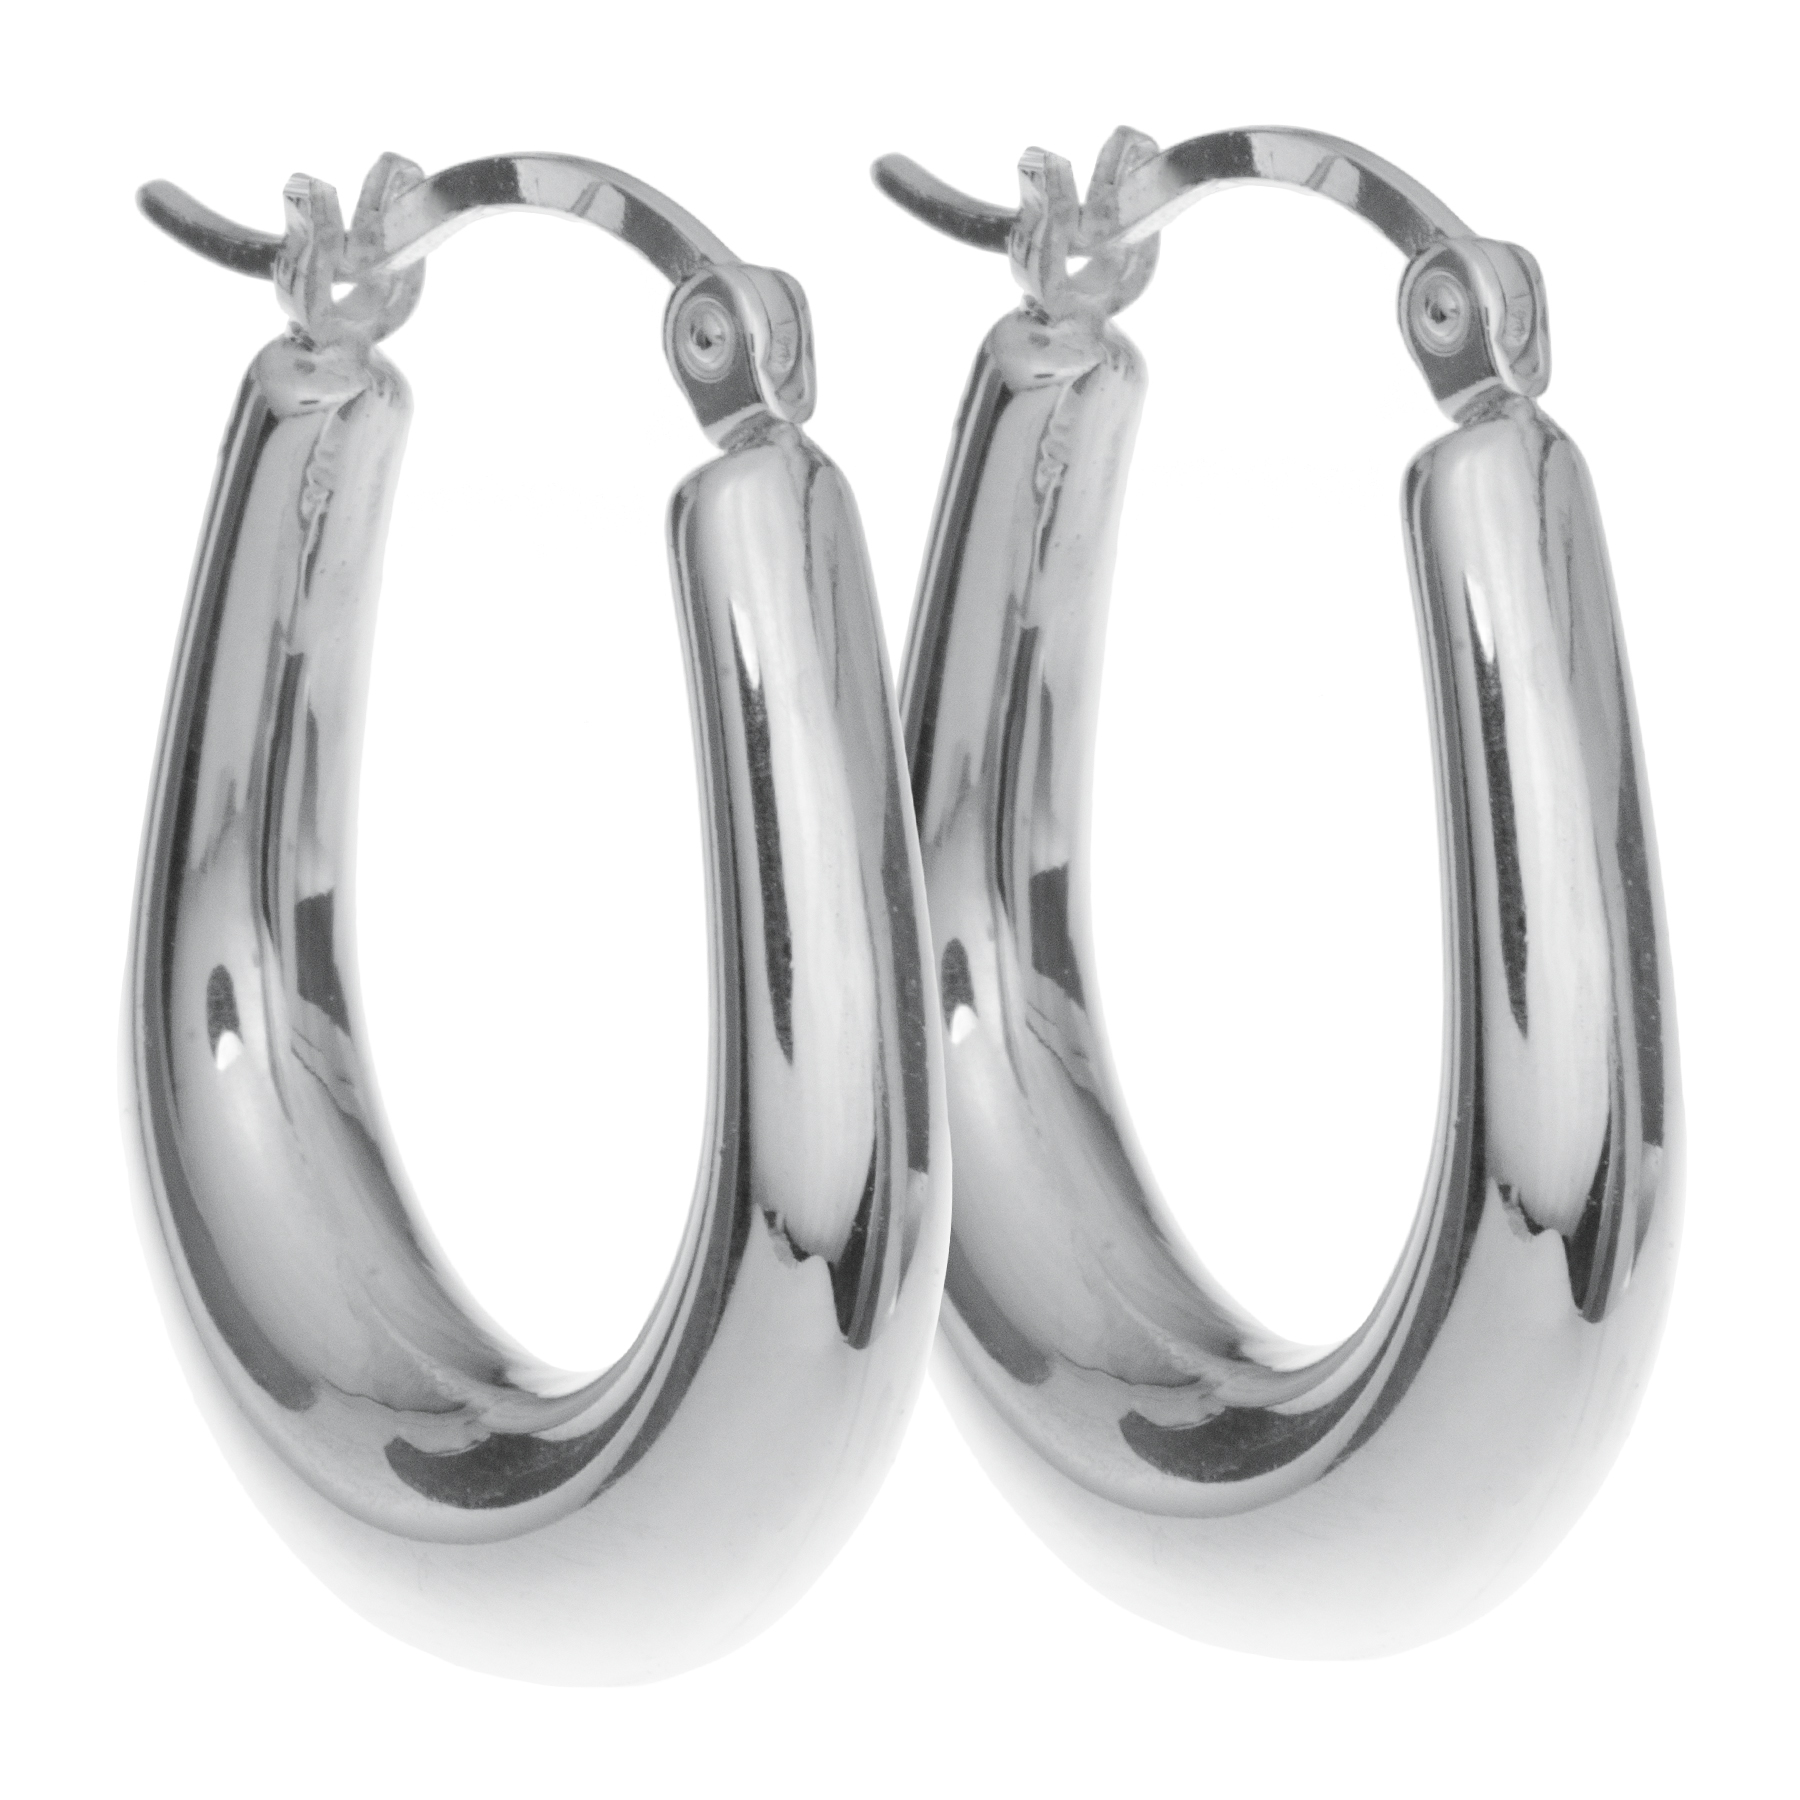 2x 925 Sterling Silver Puff Ring Hoop Huggie Hinge with Notched Post Drop Earrings